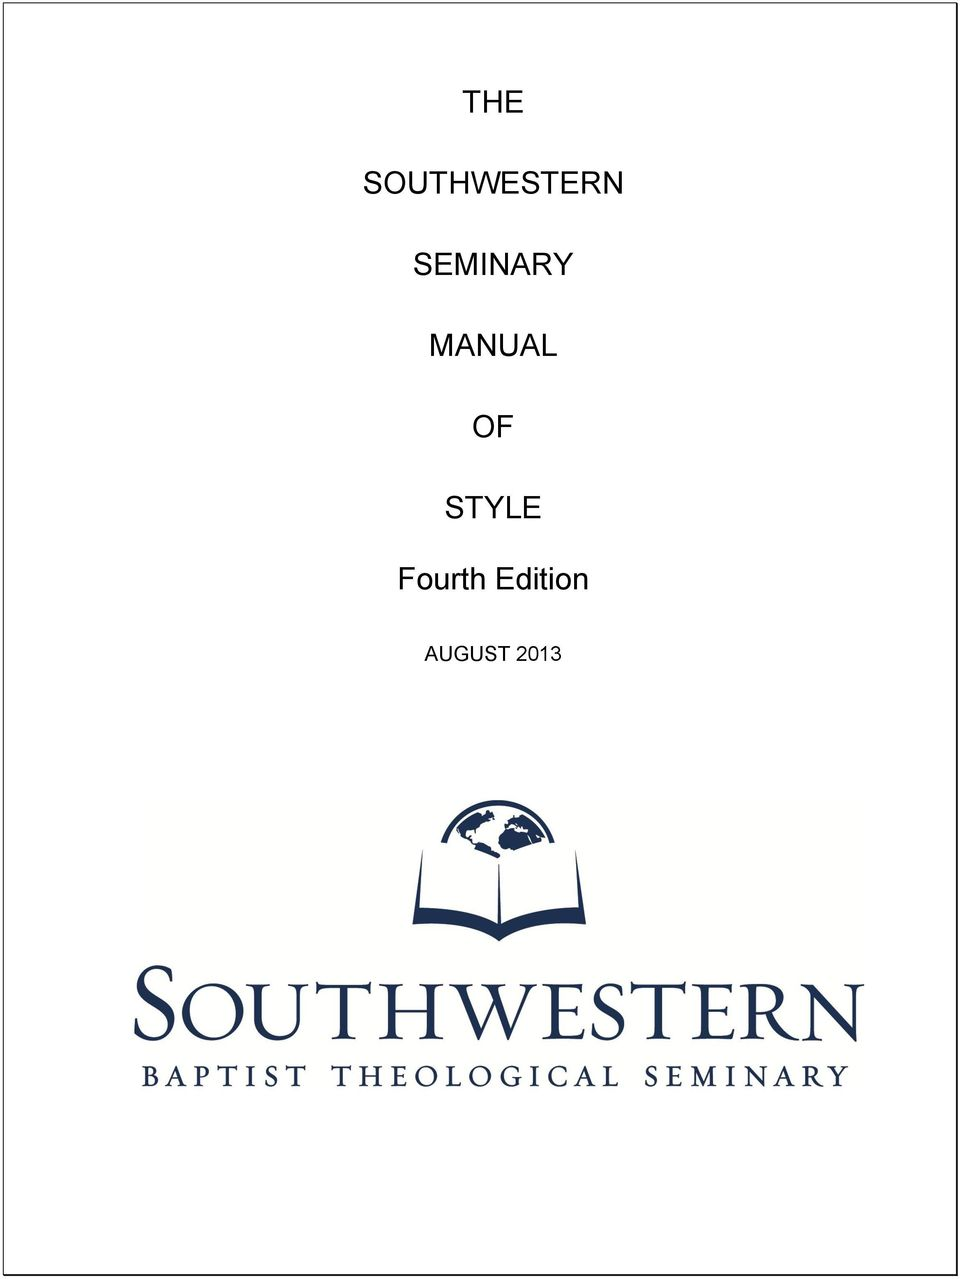 THE SOUTHWESTERN SEMINARY MANUAL STYLE Fourth Edition PDF